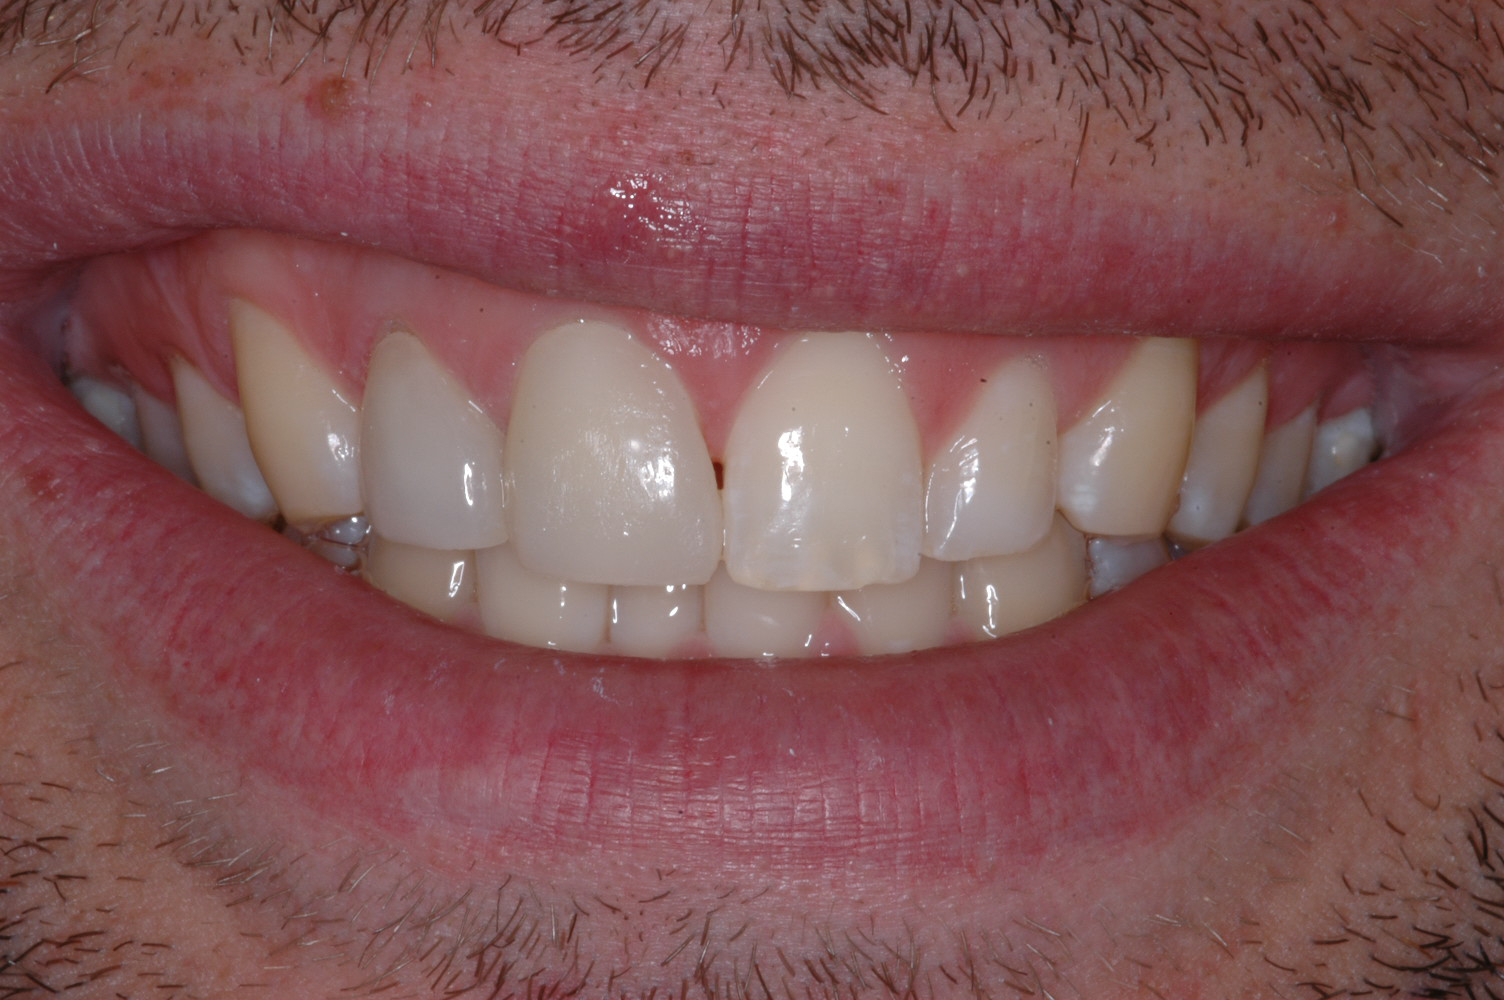 We fabricated all ceramic crowns for the two upper right incisors and added length that greatly improved the symmetry of his smile.